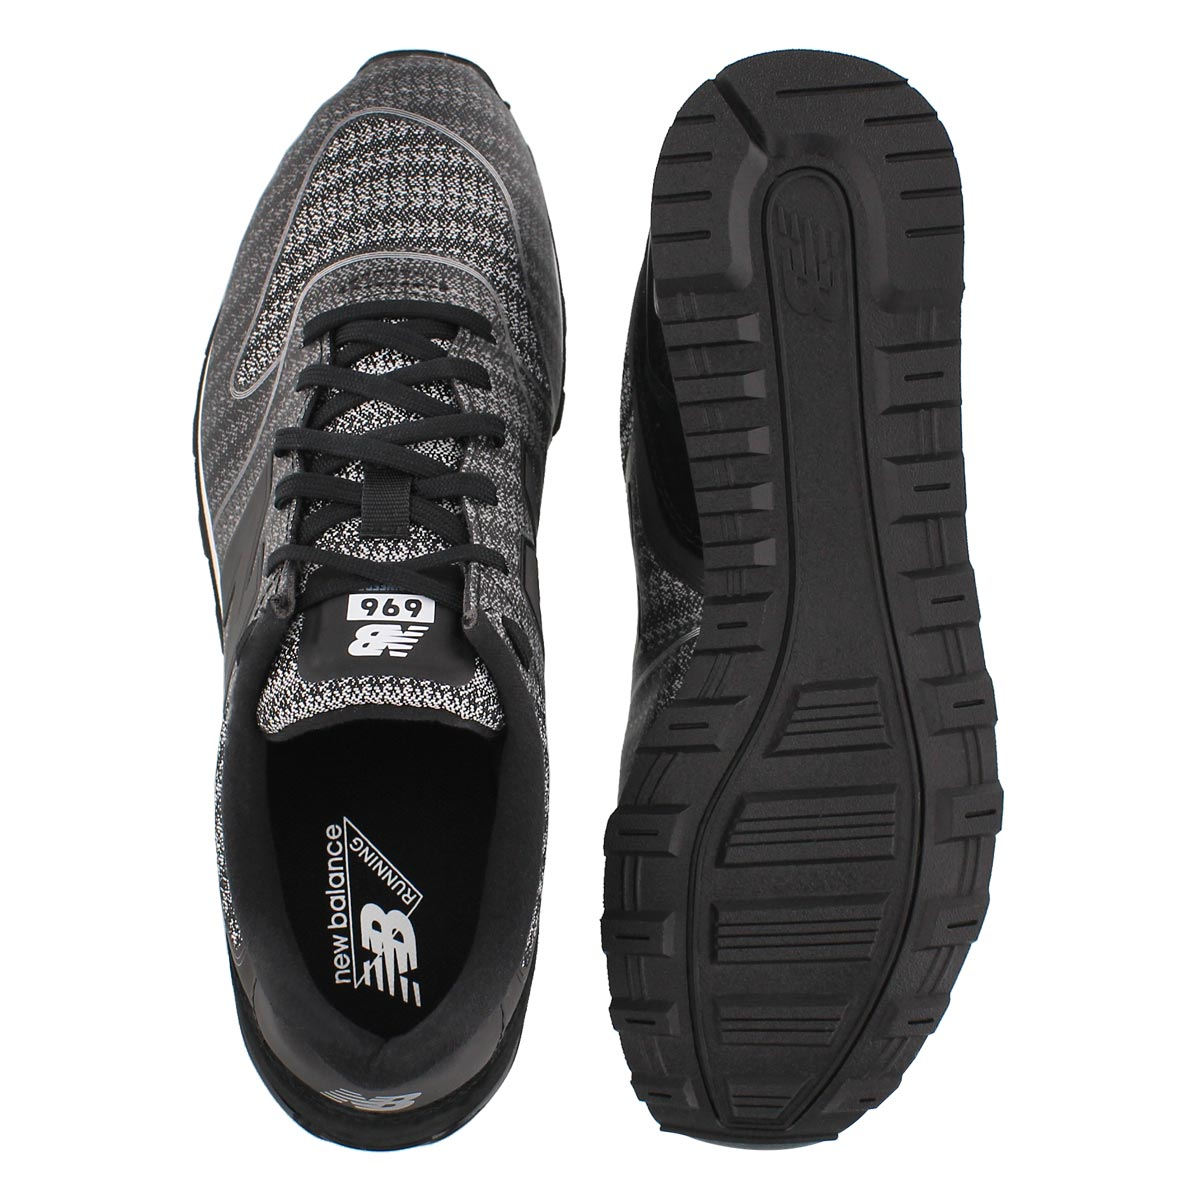 Lds 696 blk/cyclone lace up sneaker